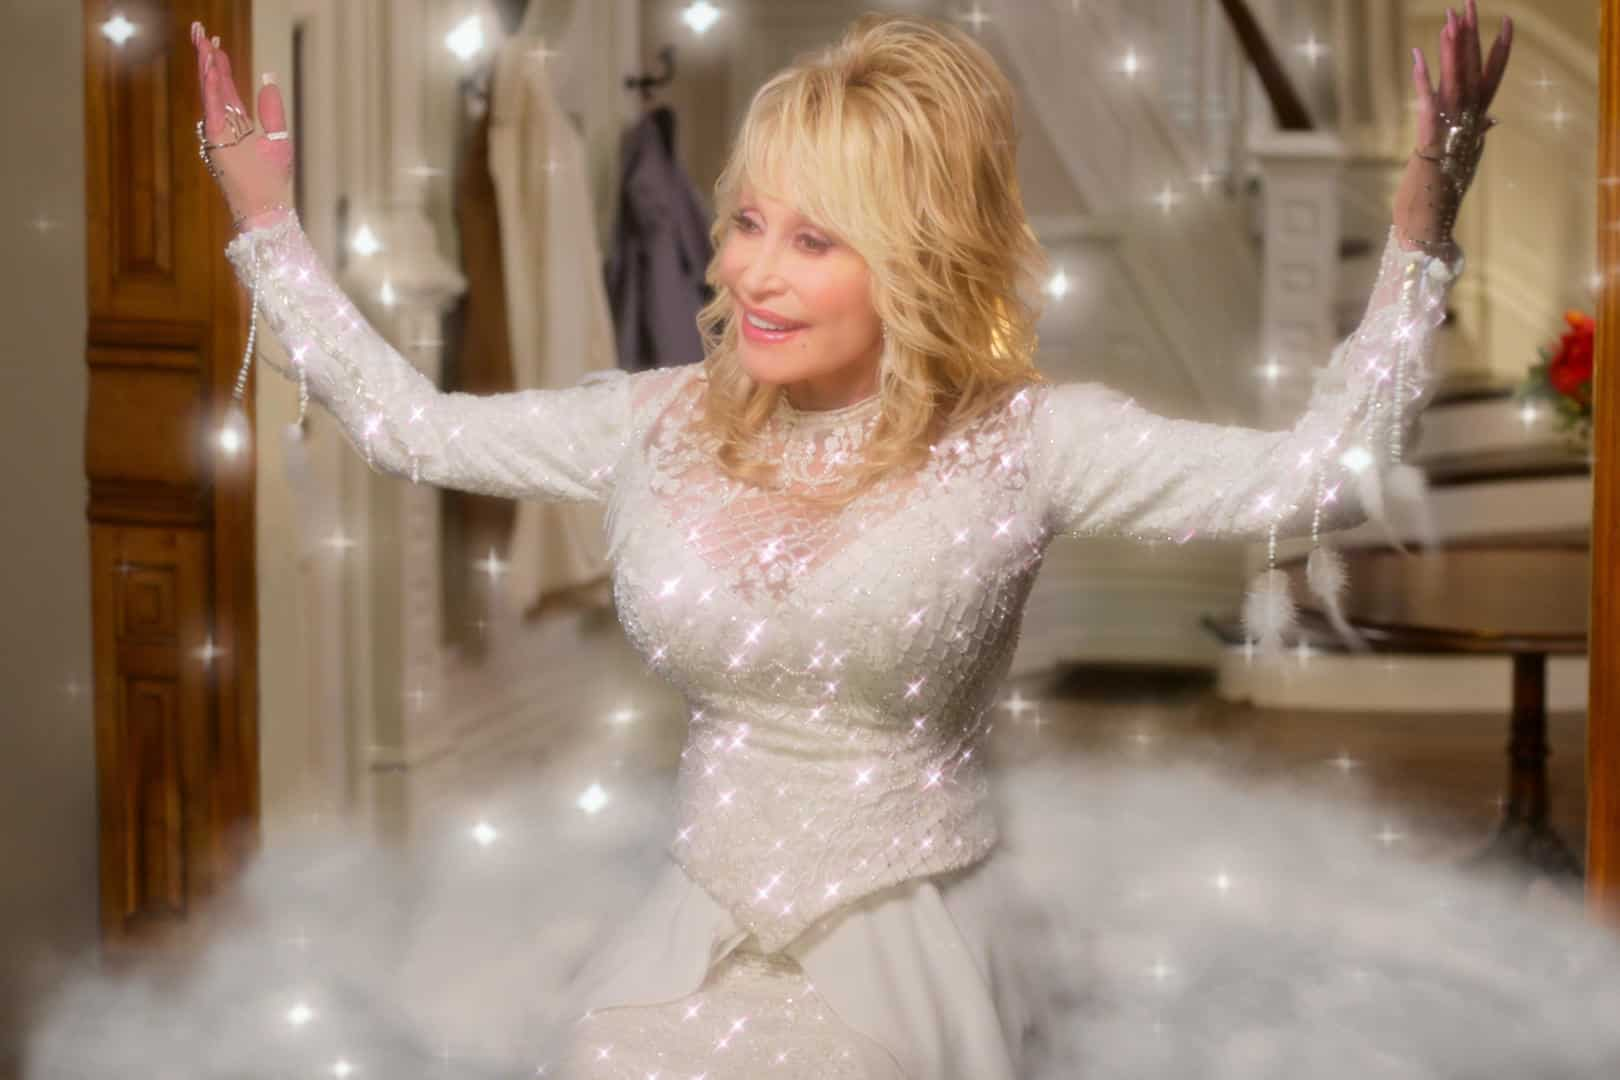 DOLLY PARTONÕS CHRISTMAS ON THE SQUARE (L to R) DOLLY PARTON as ANGEL in DOLLY PARTONÕS CHRISTMAS ON THE SQUARE Cr. COURTESY OF NETFLIX © 2020